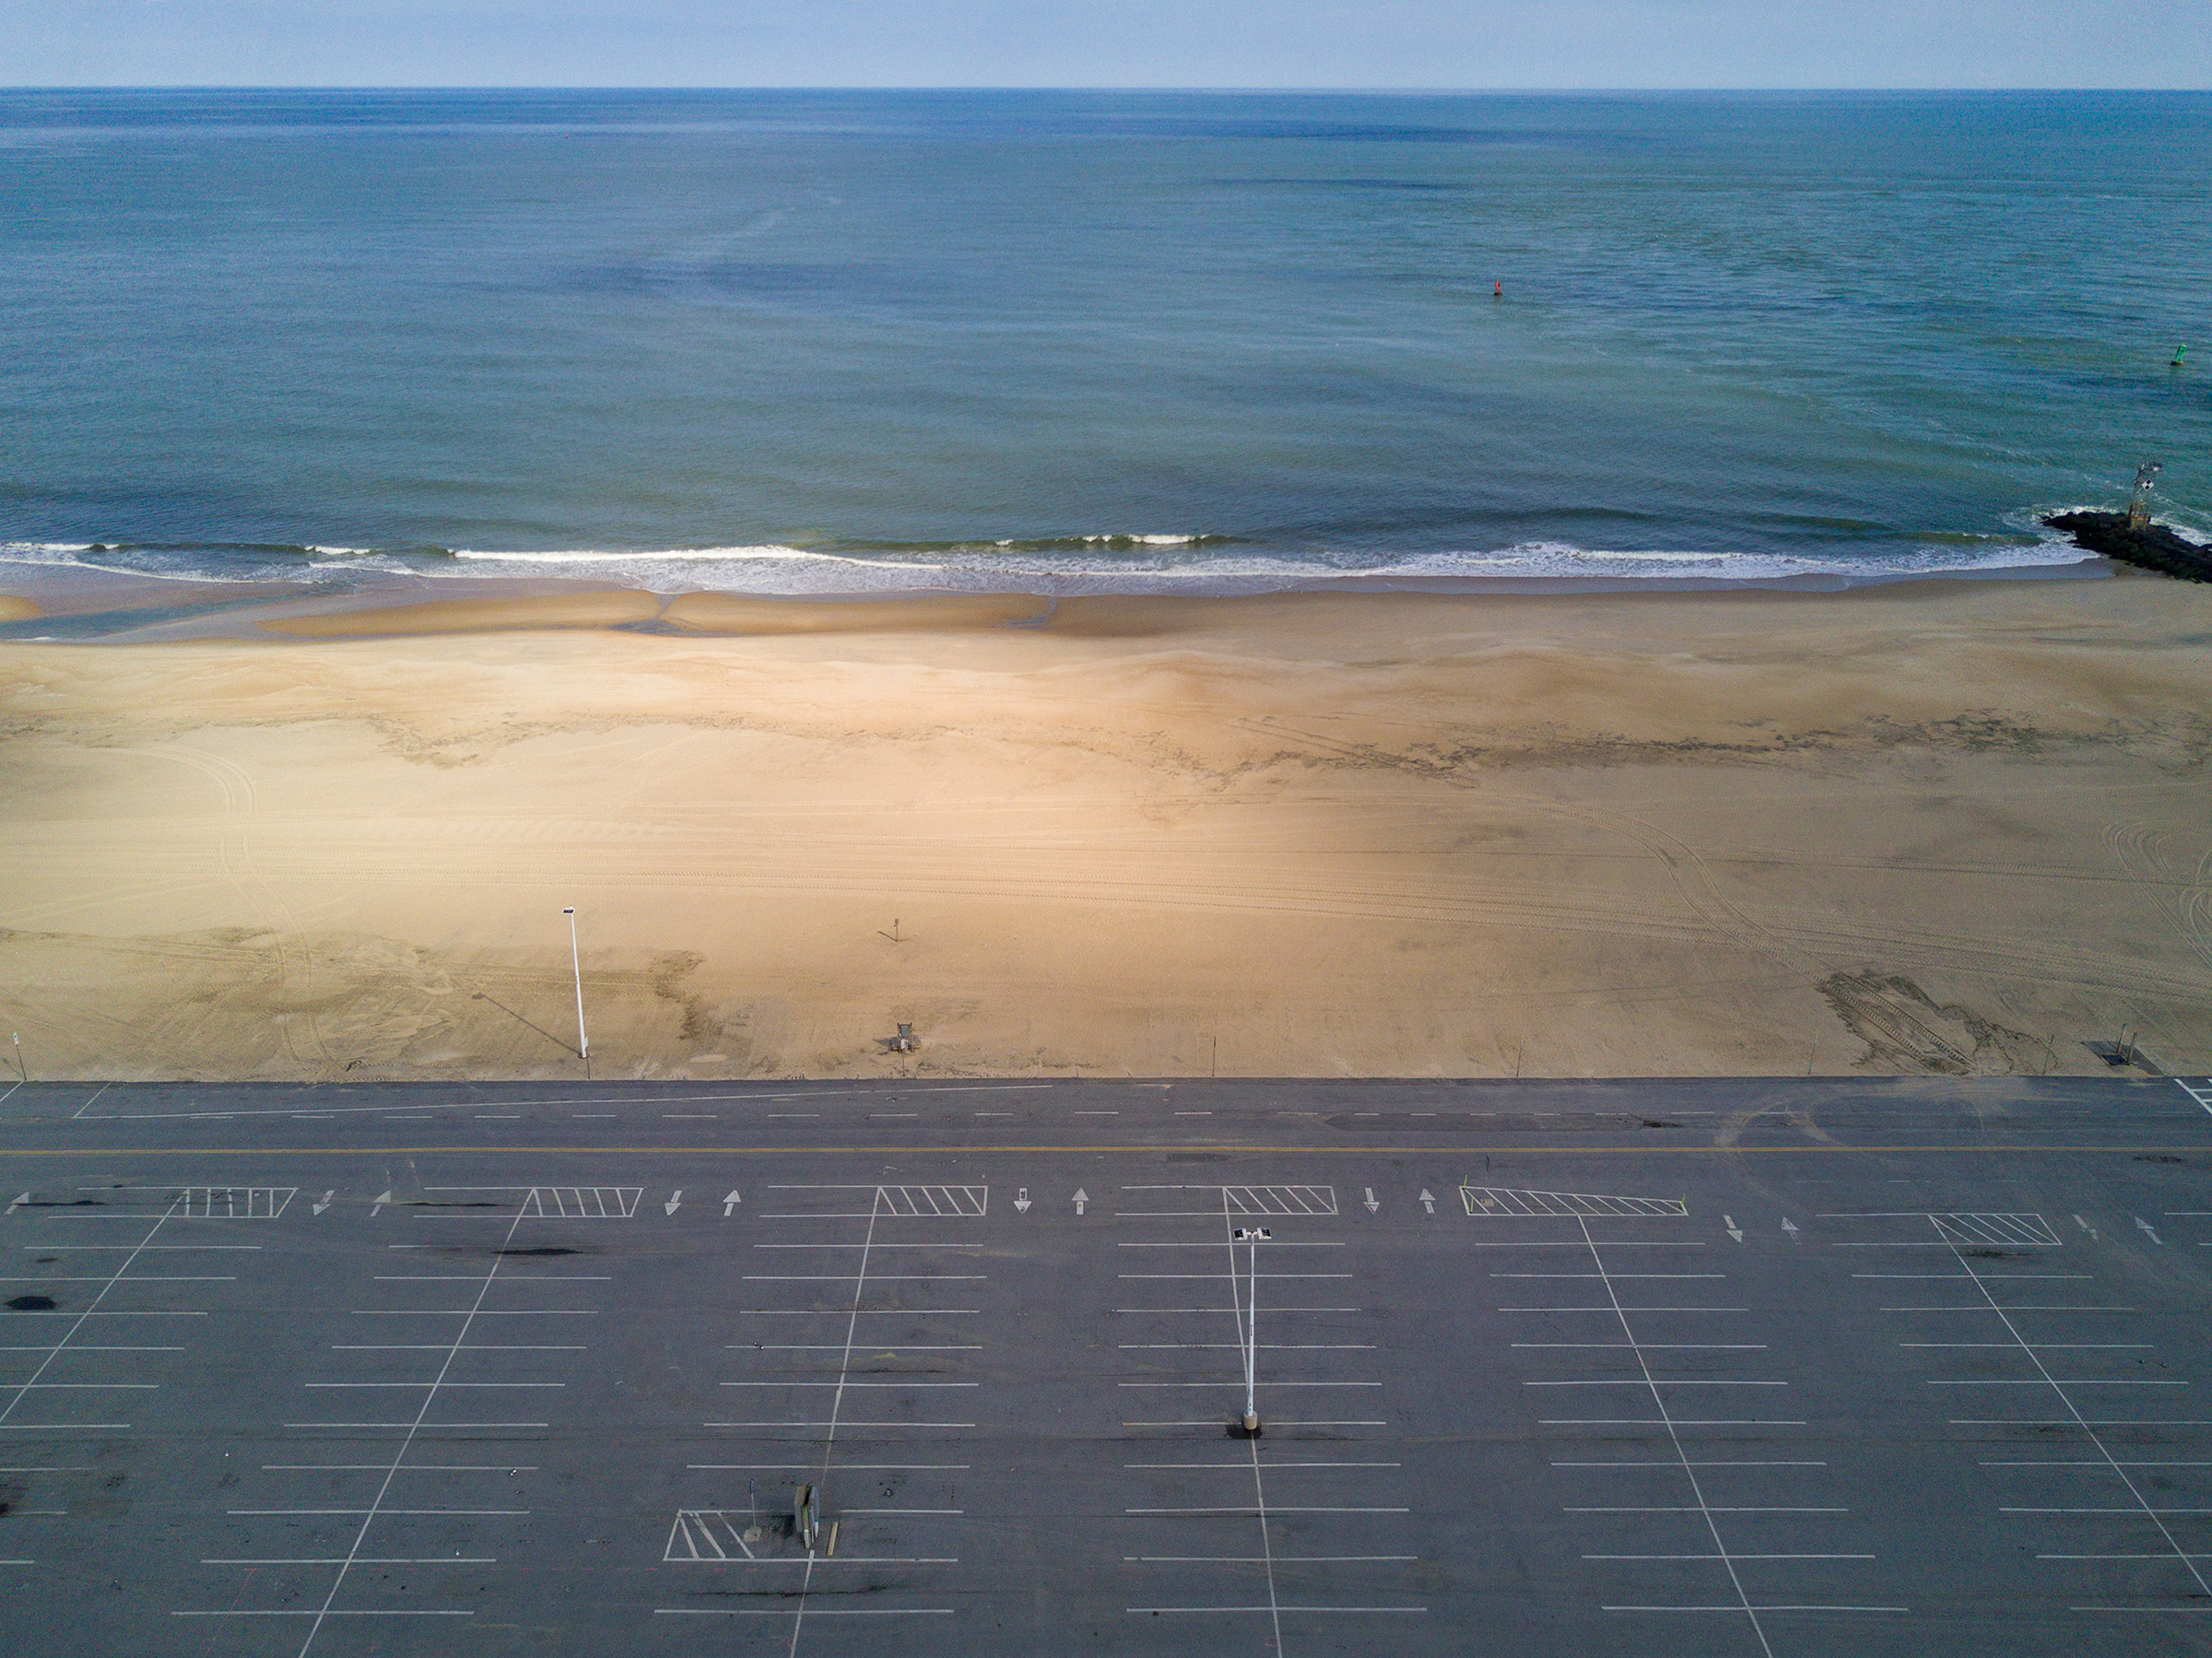 An empty parking lot in the beach town of Ocean City, Md., on April 16.